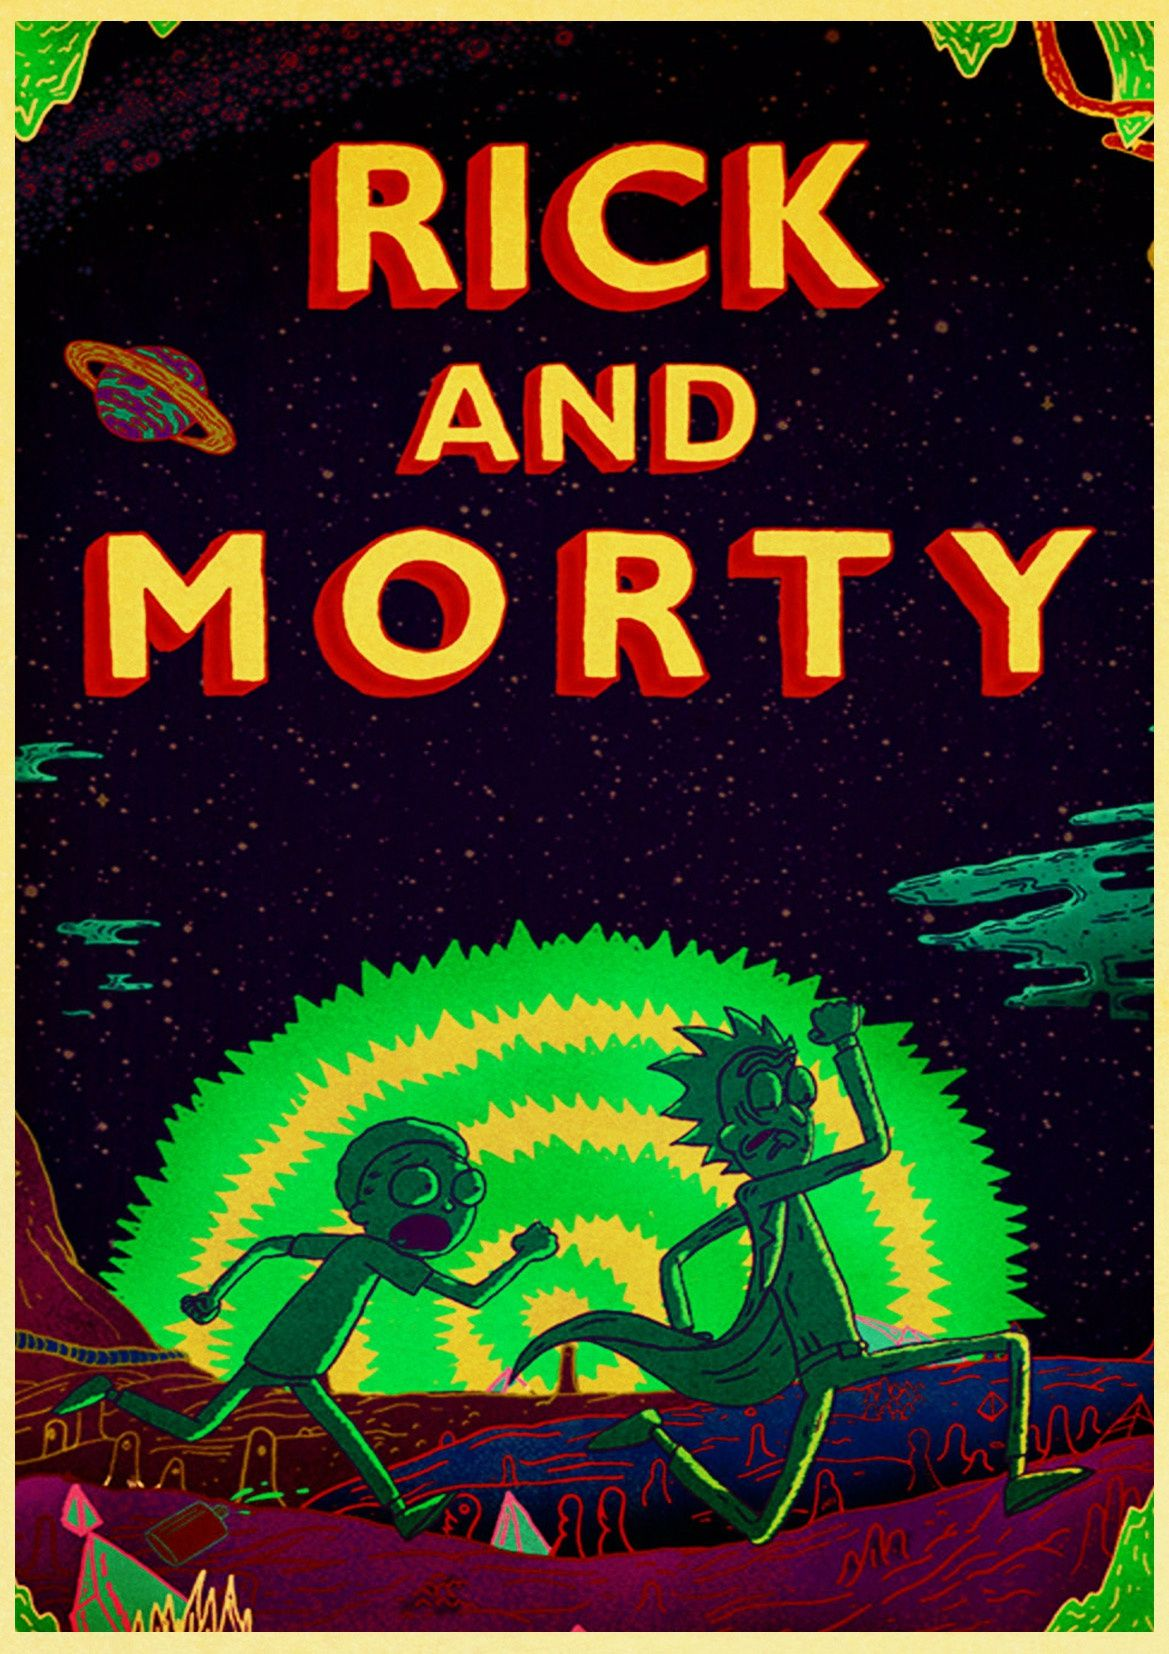 New 2020 Rick And Morty Retro Poster in 2020 Rick morty poster 1169x1654